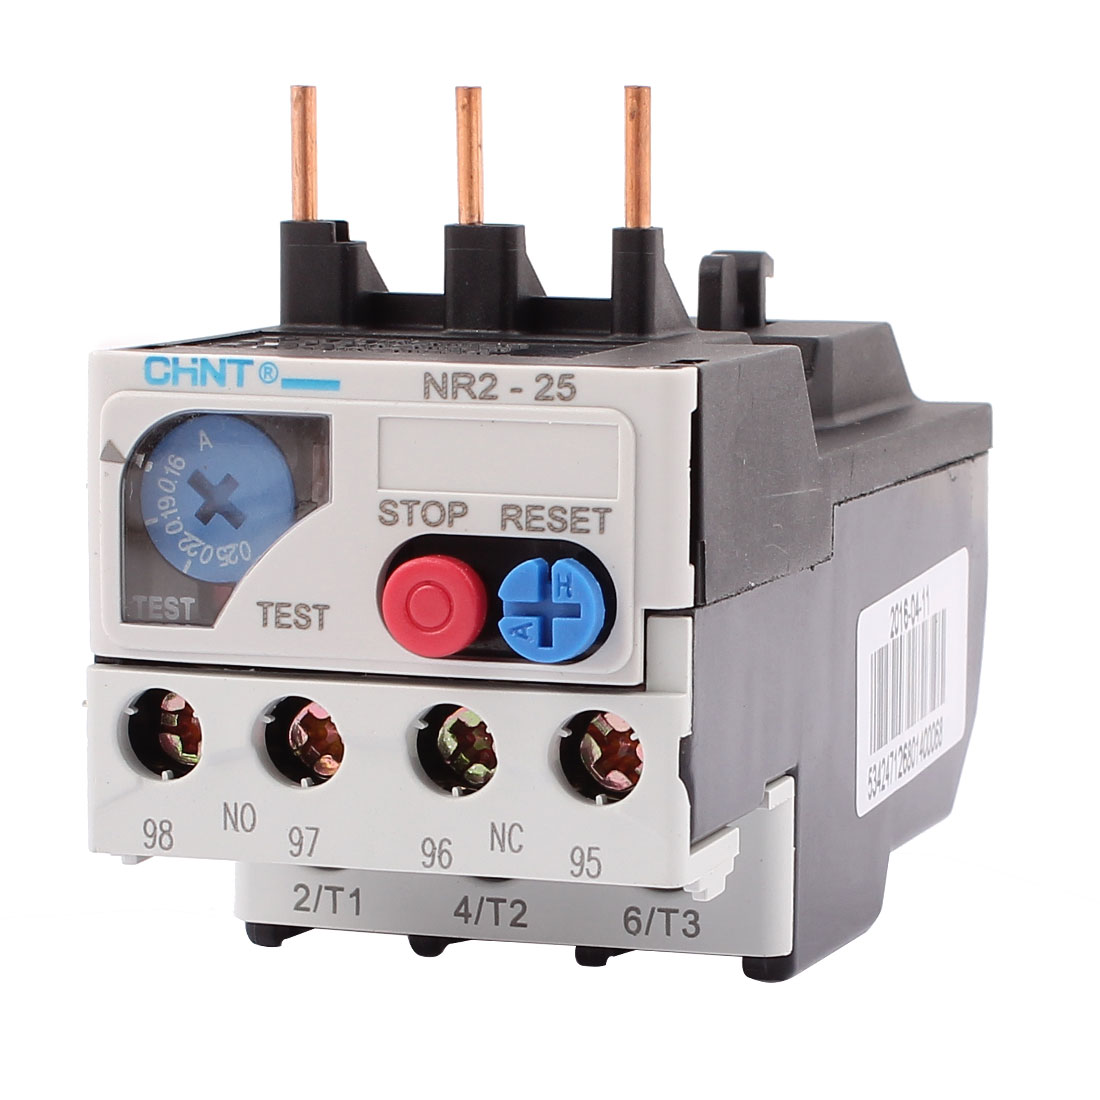 NR2-25 0.16-0.25A 3 Pole 1 NO 1 NC Motor Protector Electric Thermal Overload Relay